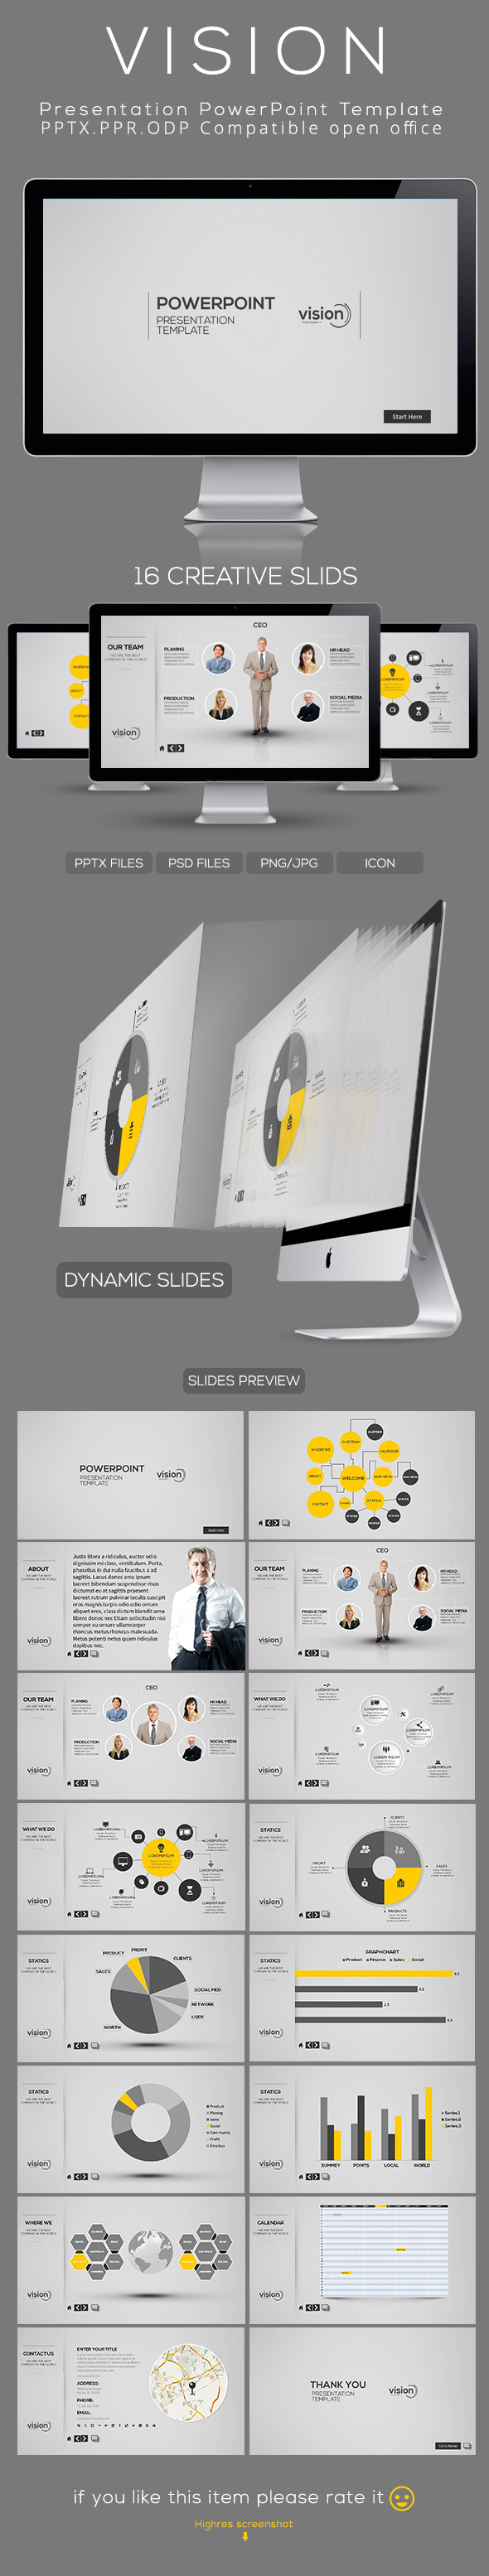 3 beautiful powerpoint templates free via goanimates video vision powerpoint presentation template on behance toneelgroepblik Images